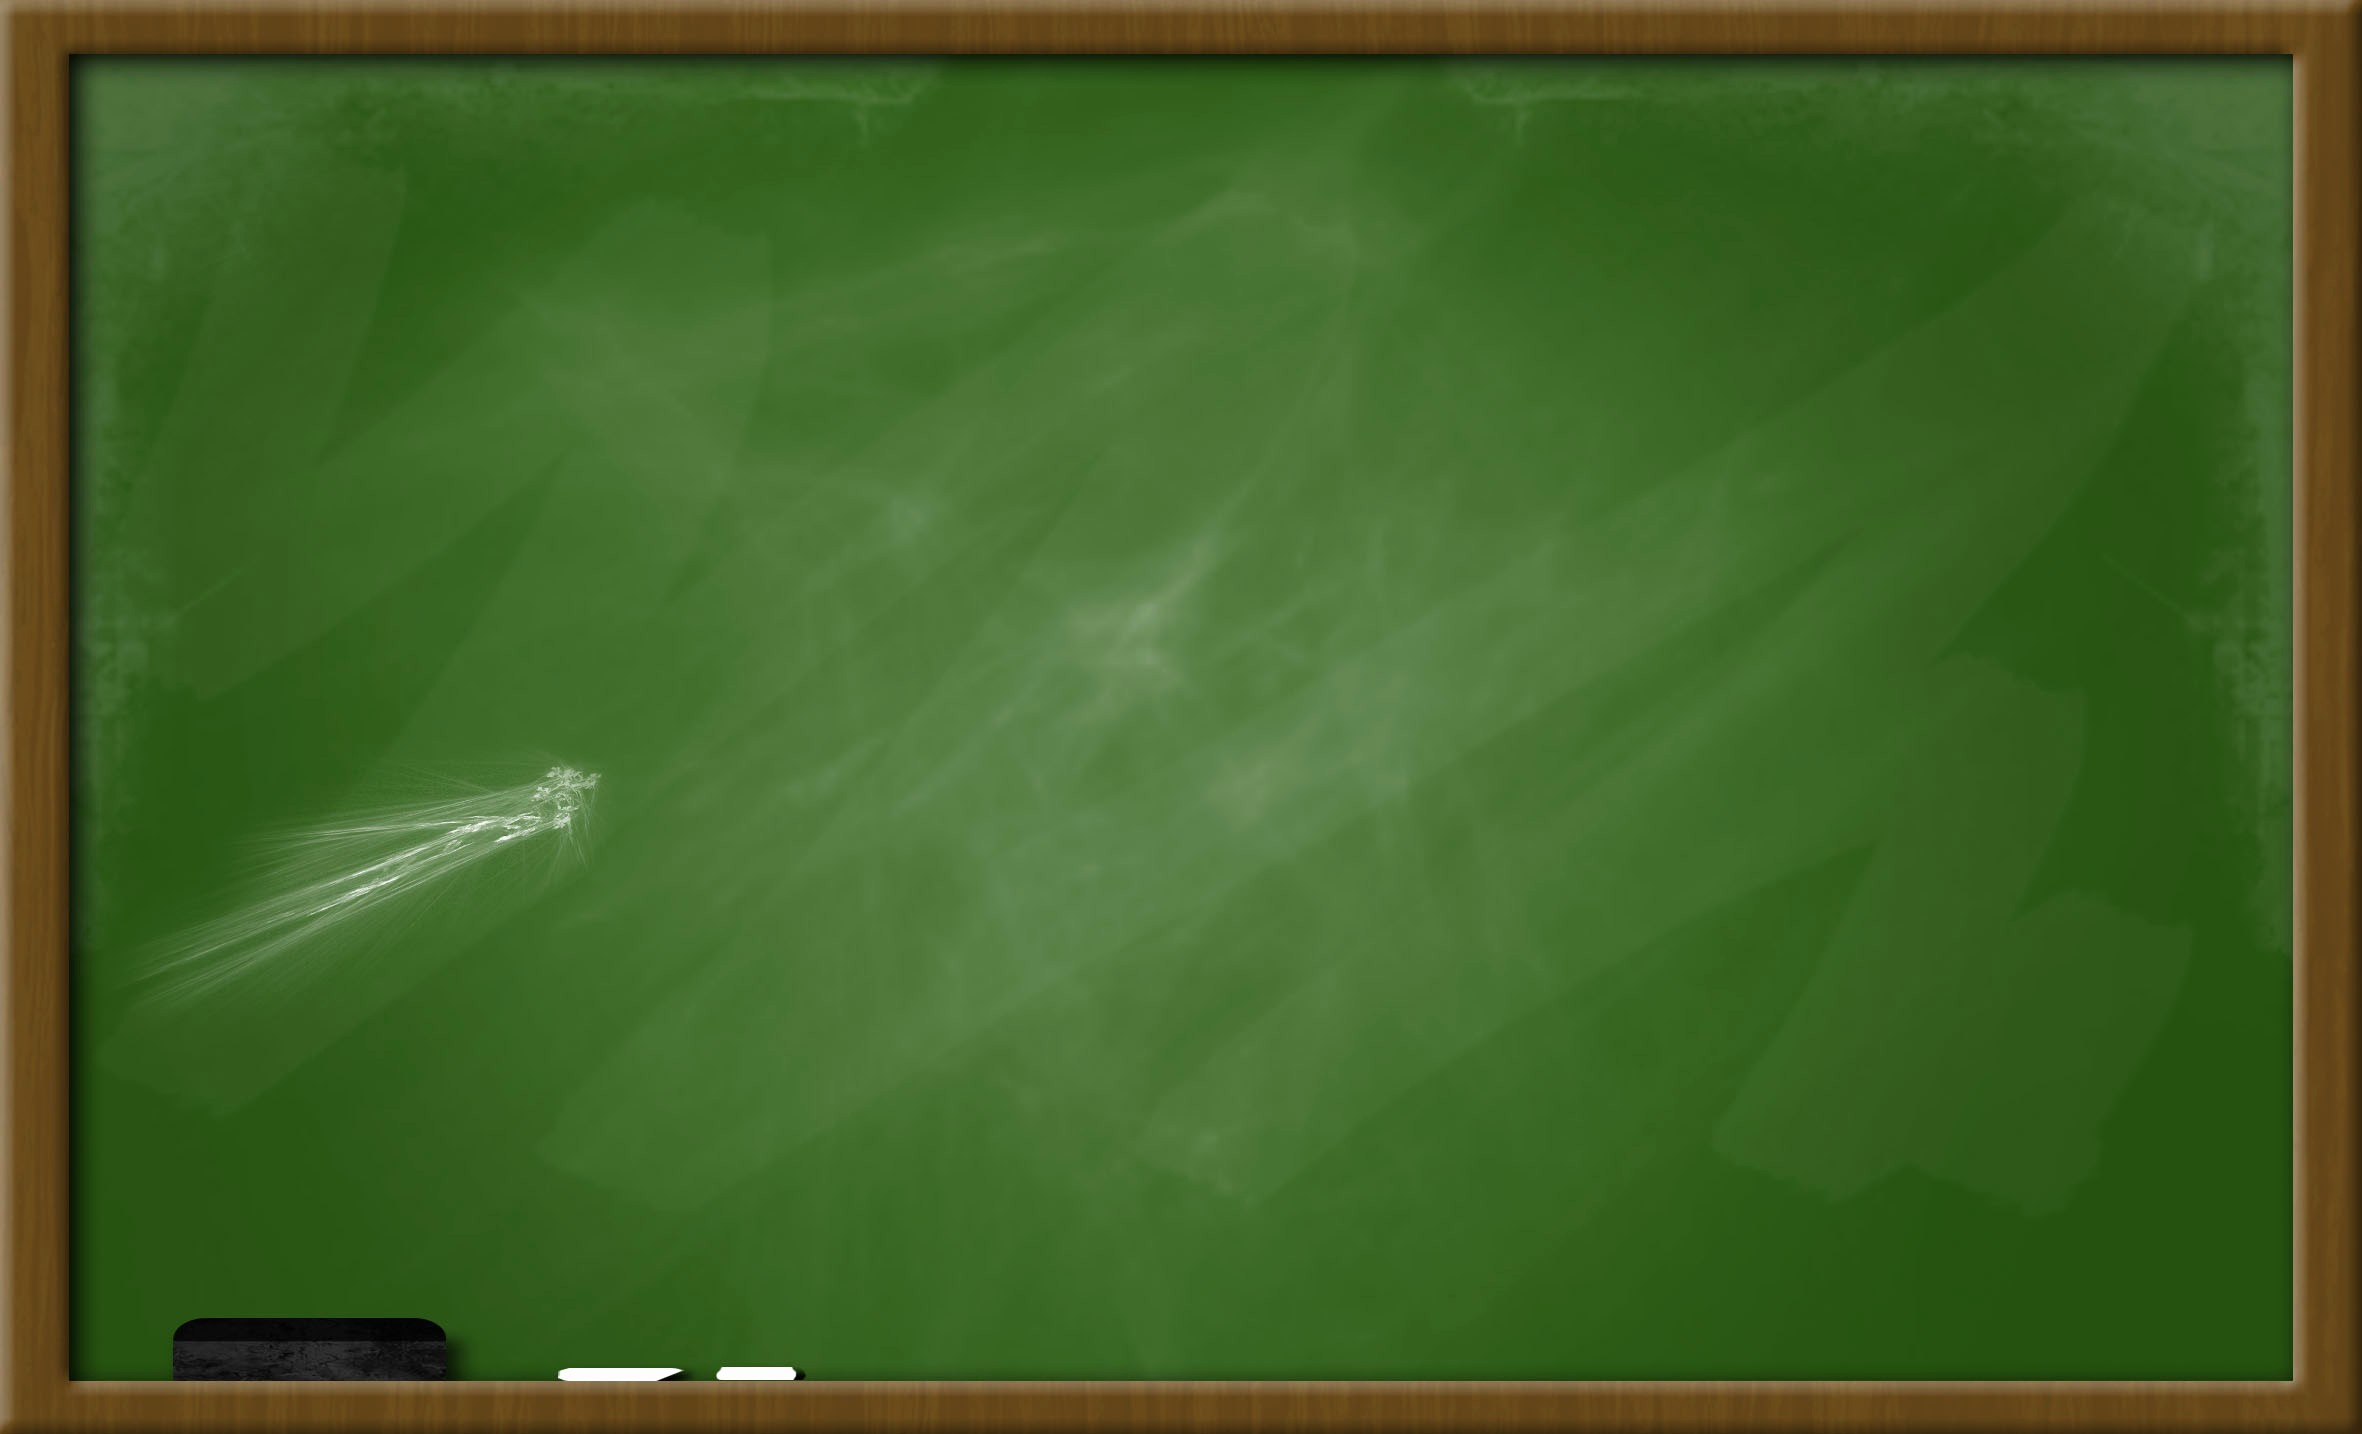 Free Chalkboard Background for Powerpoint Beautiful Chalkboard Backgrounds Free Download